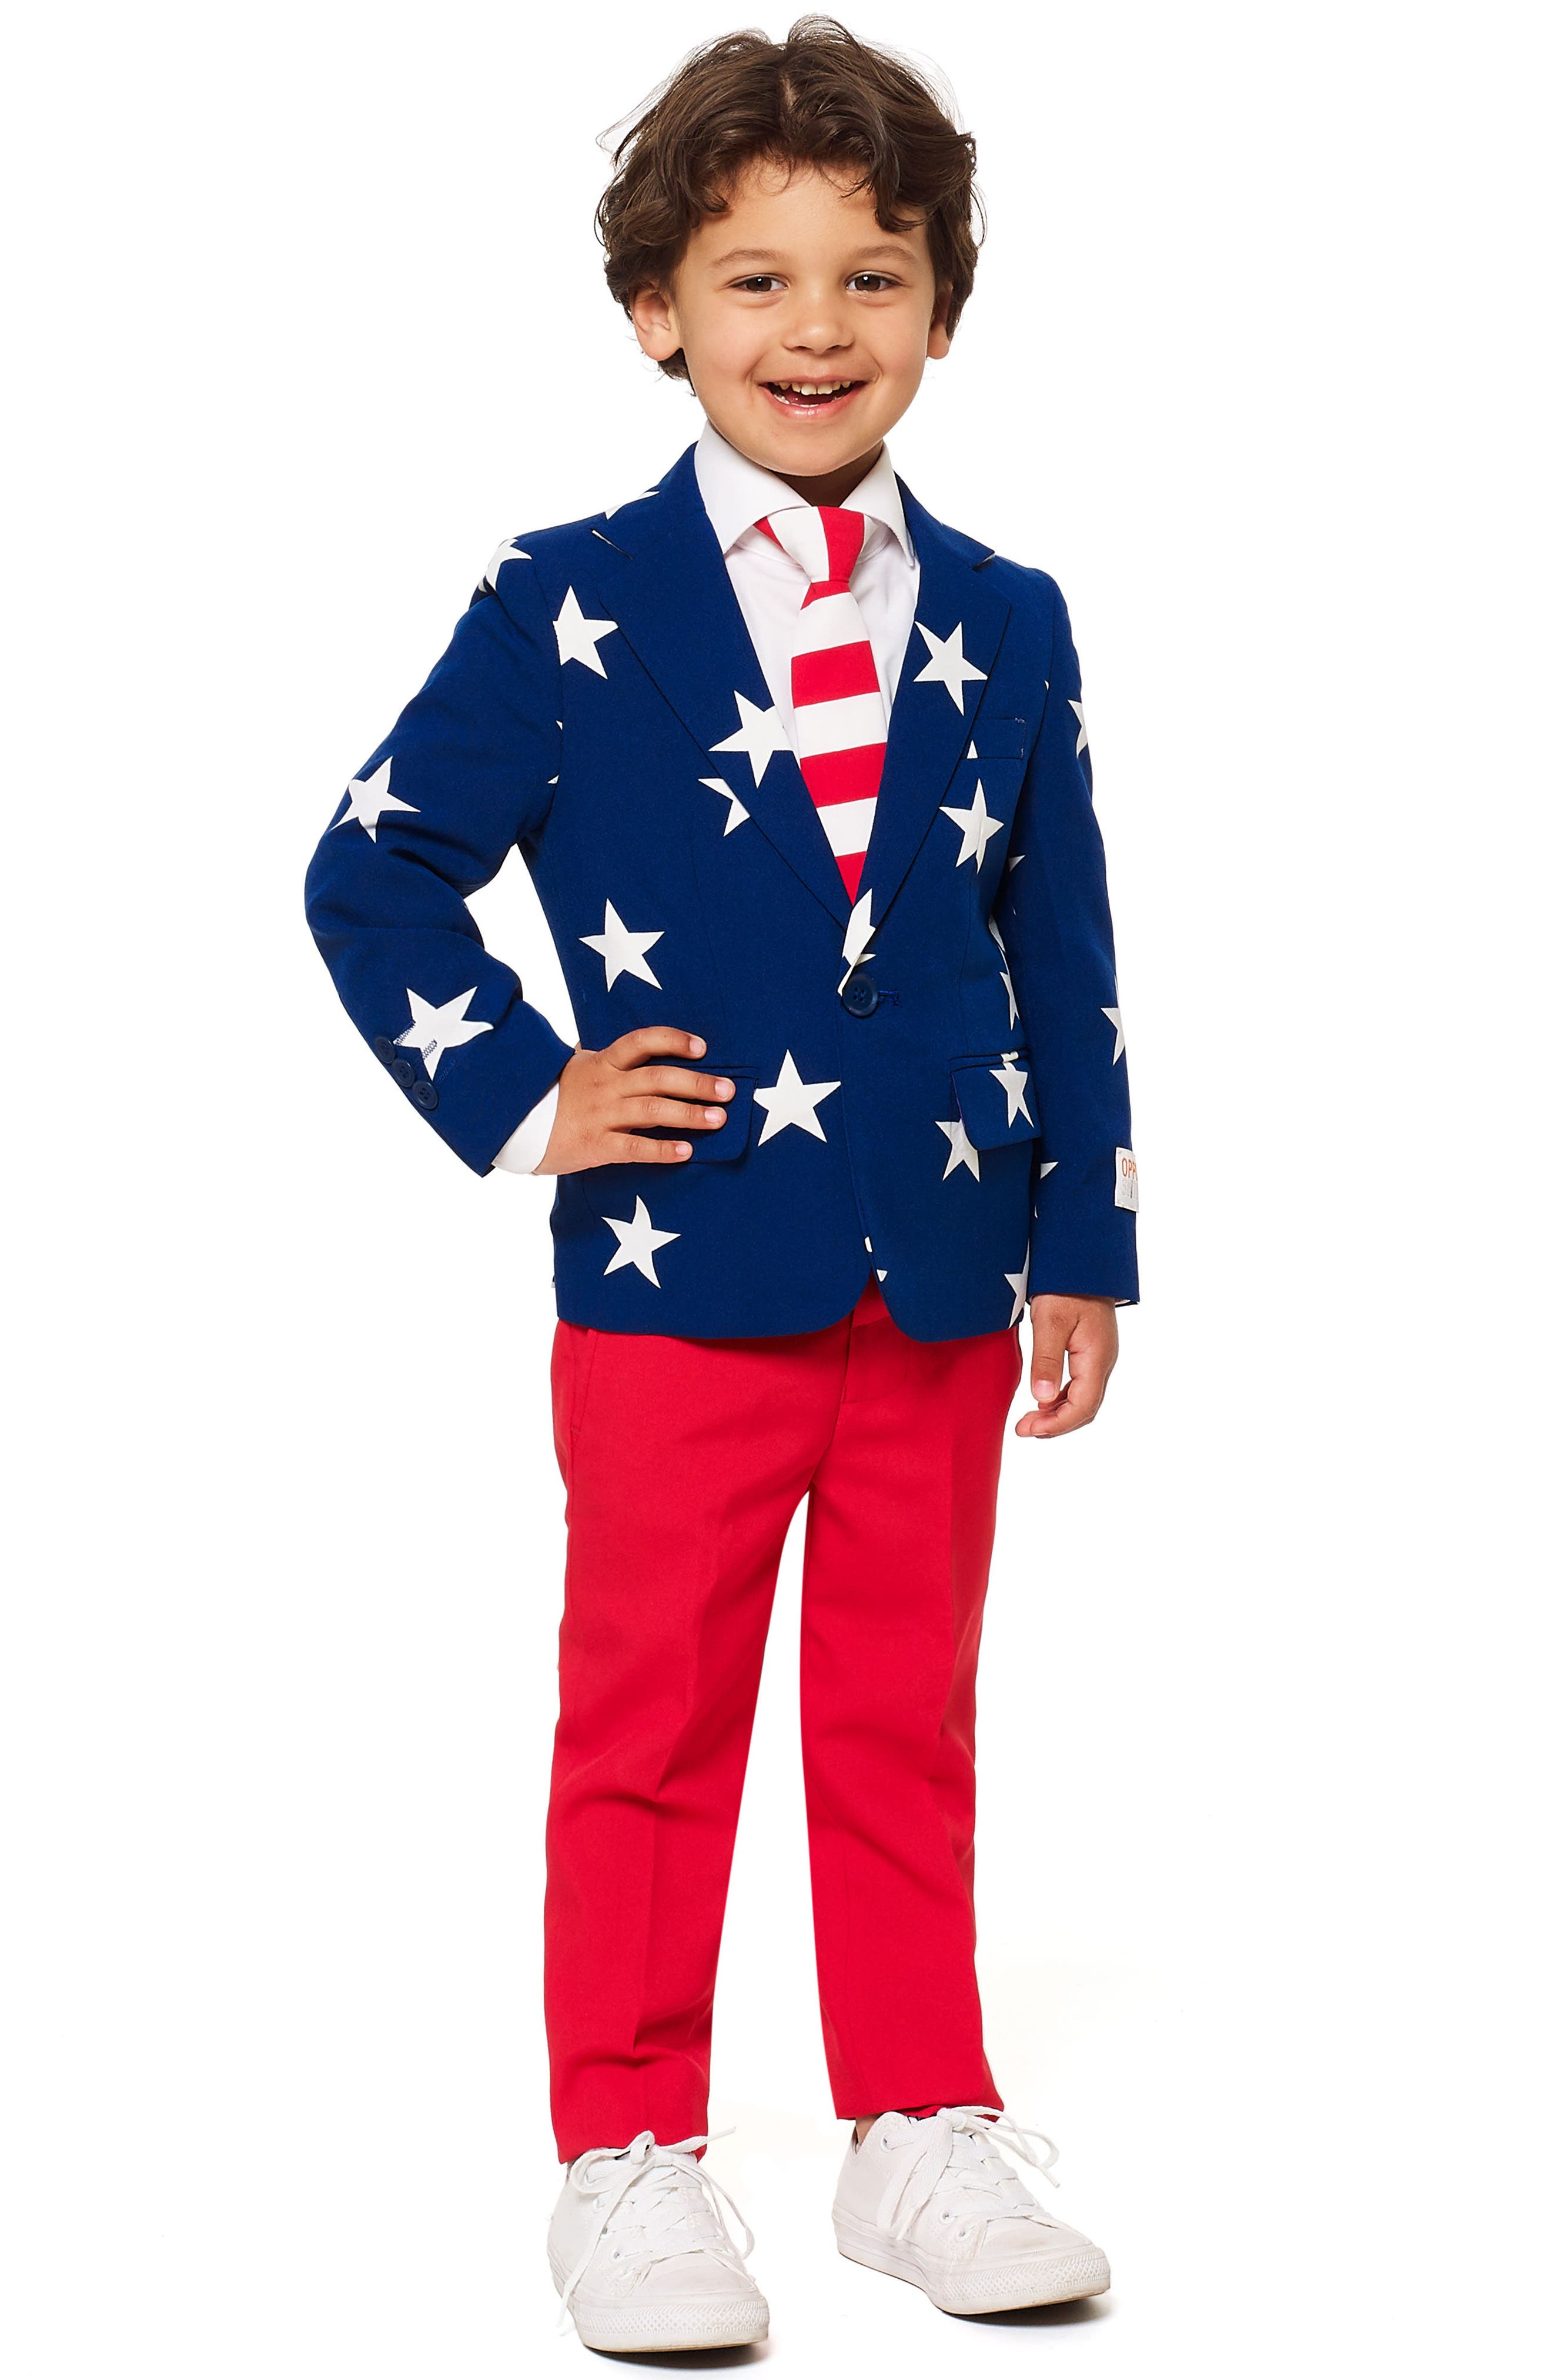 Stars & Stripes Two-Piece Suit with Tie,                             Main thumbnail 1, color,                             BLUE